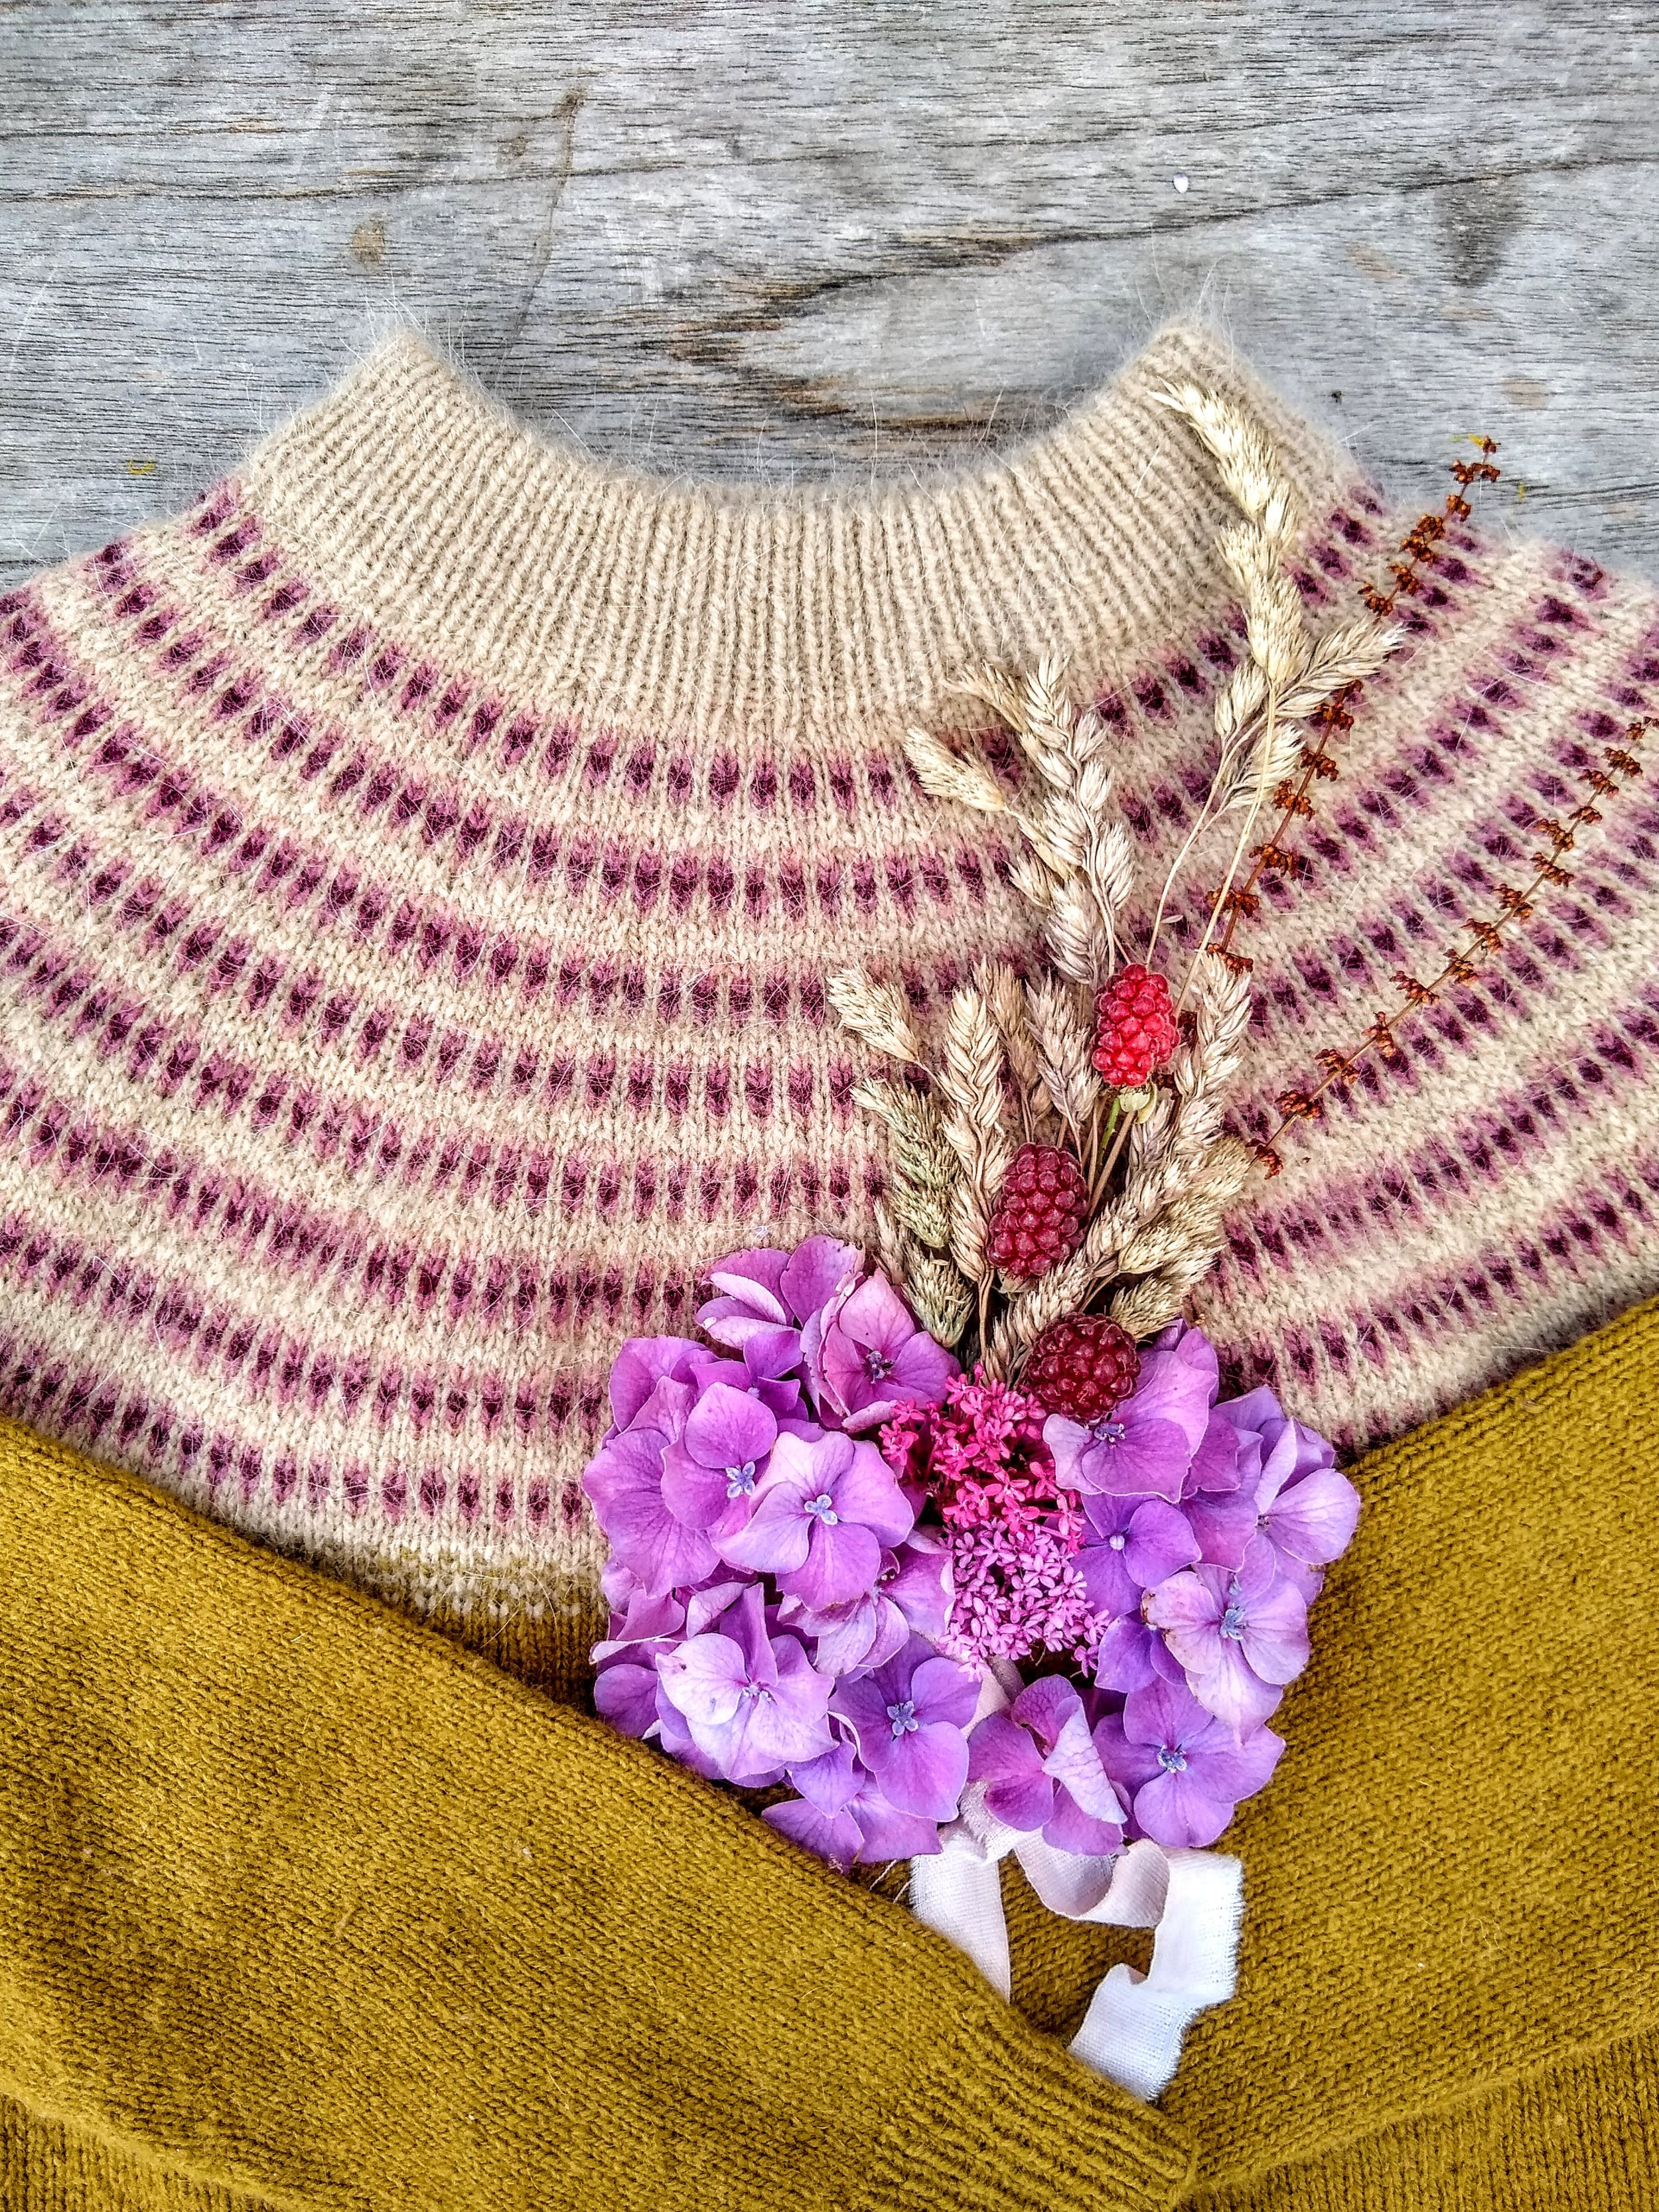 Can you hear this sweater saying: Knit me!